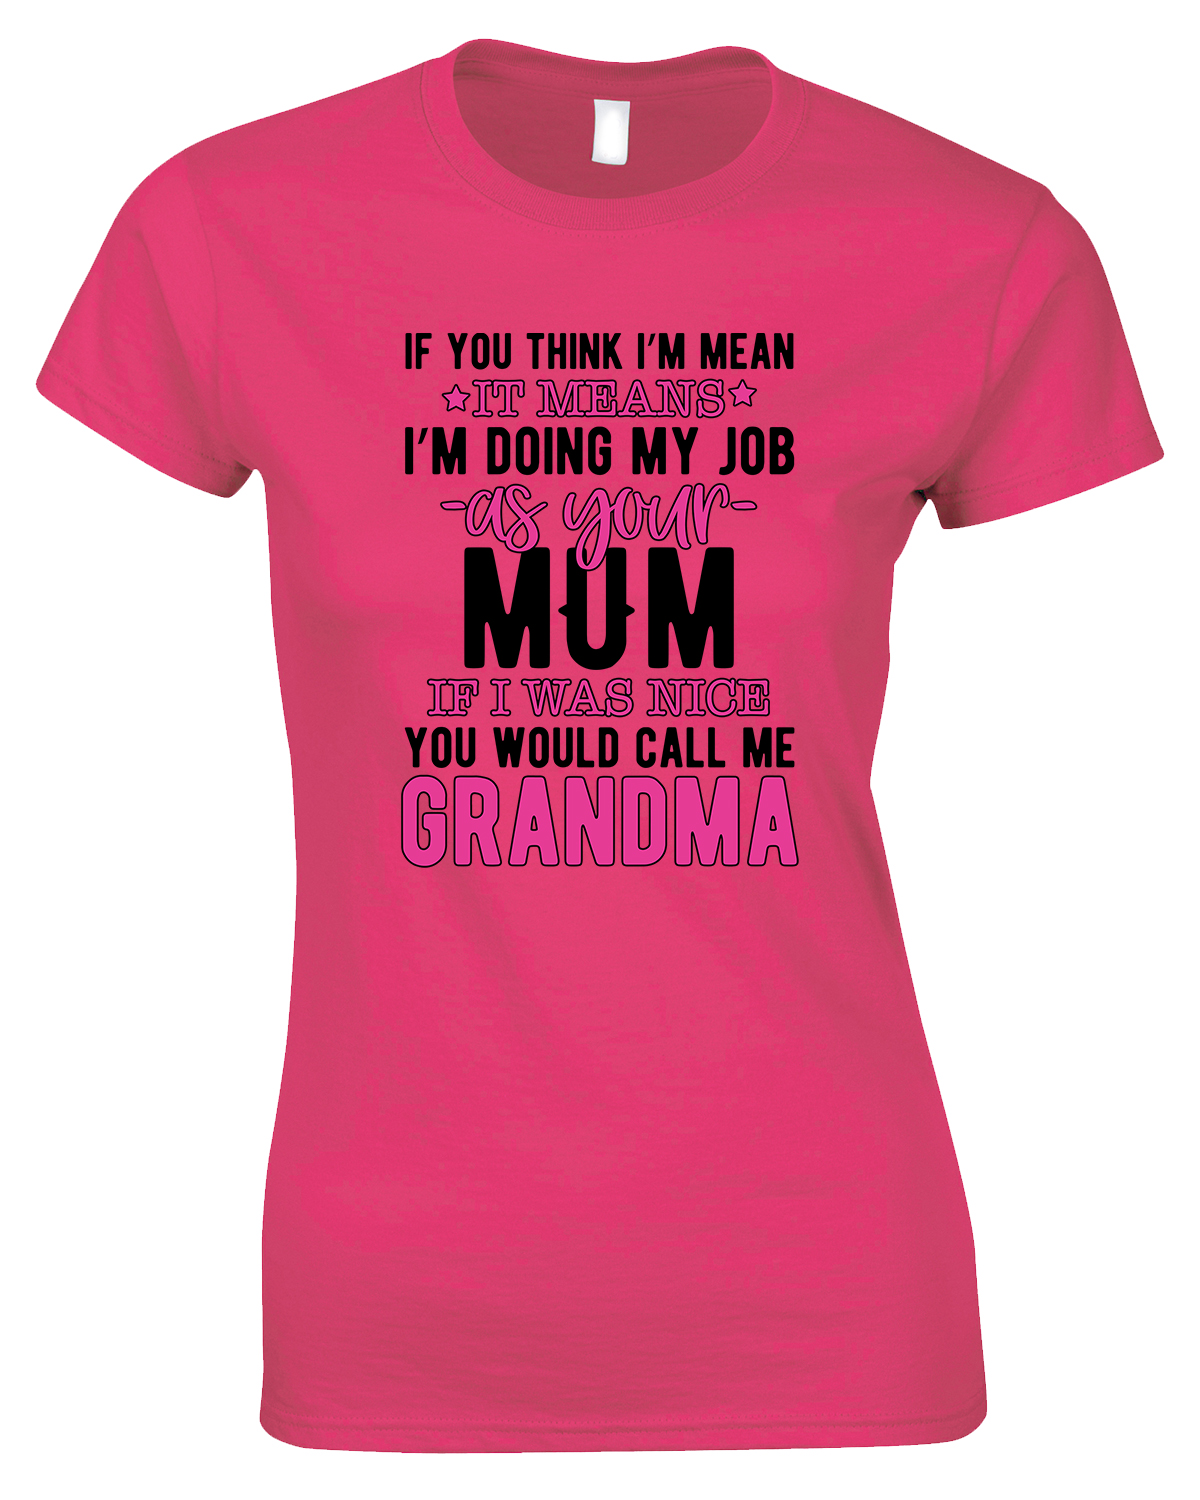 If You Think I'm Mean It Means I'm Doing My Job ....Ladies Novelty T Shirt